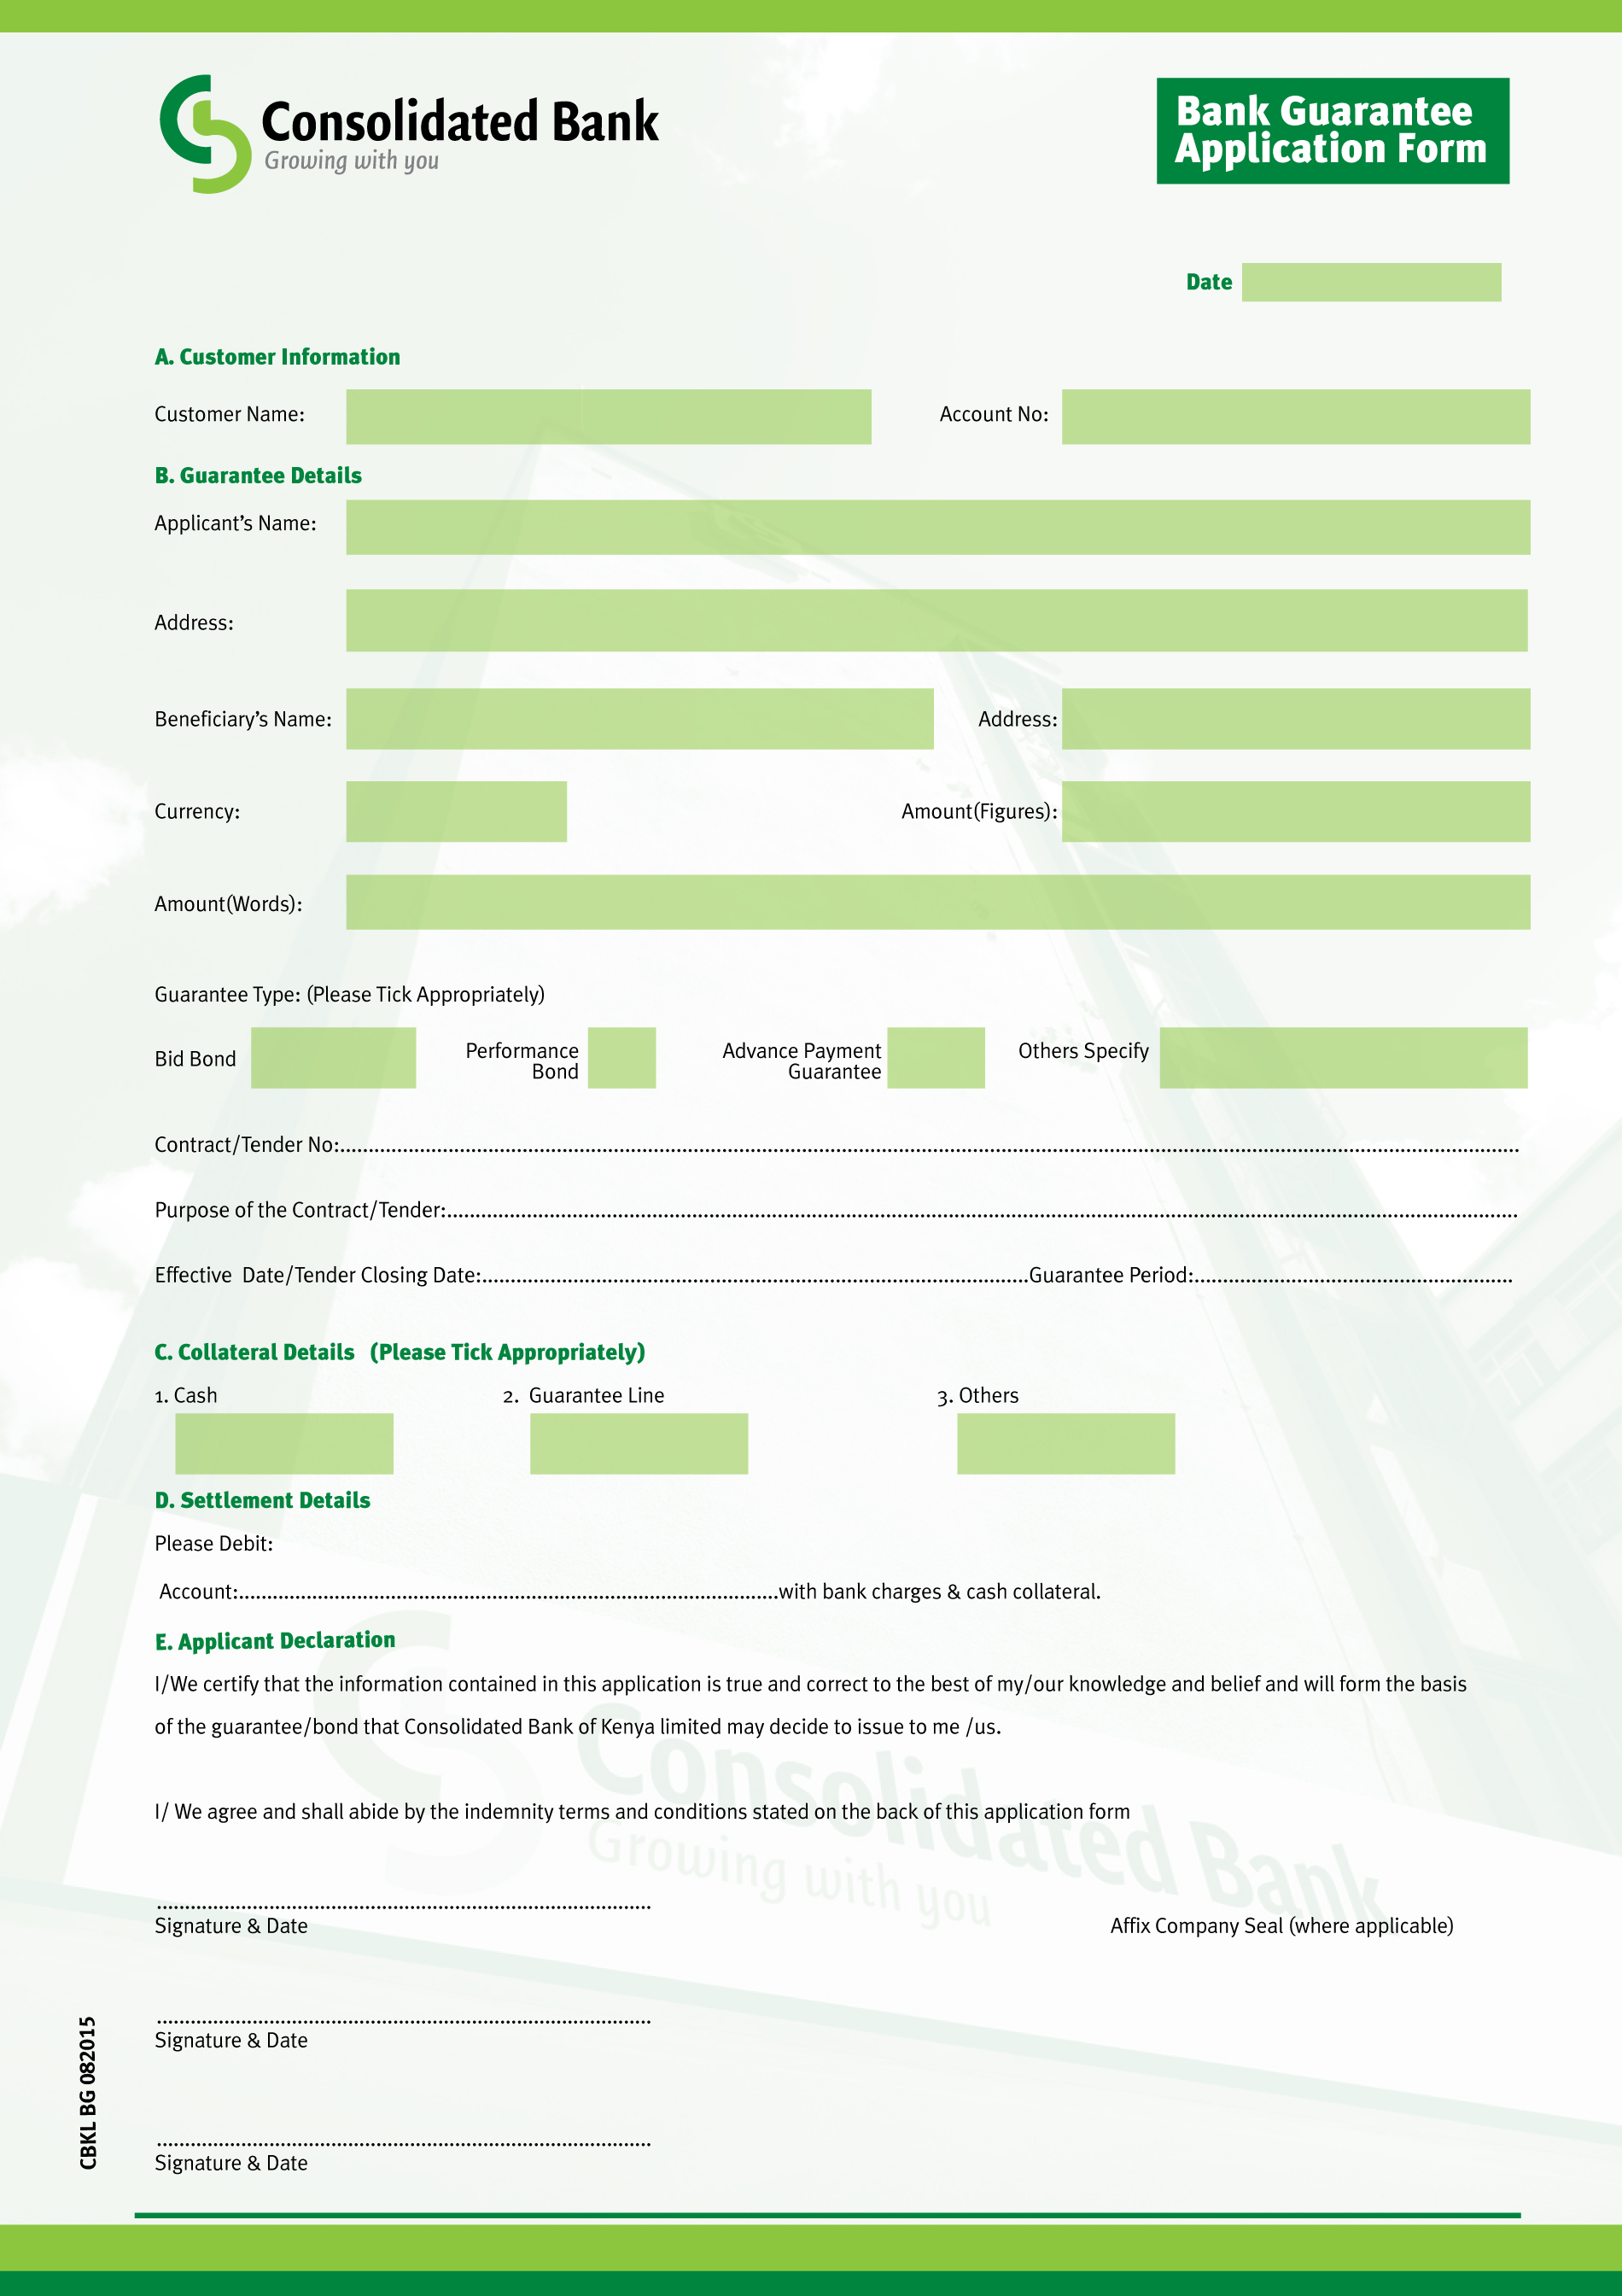 consolidated bank of we are better together bank guarantee application form pg 1